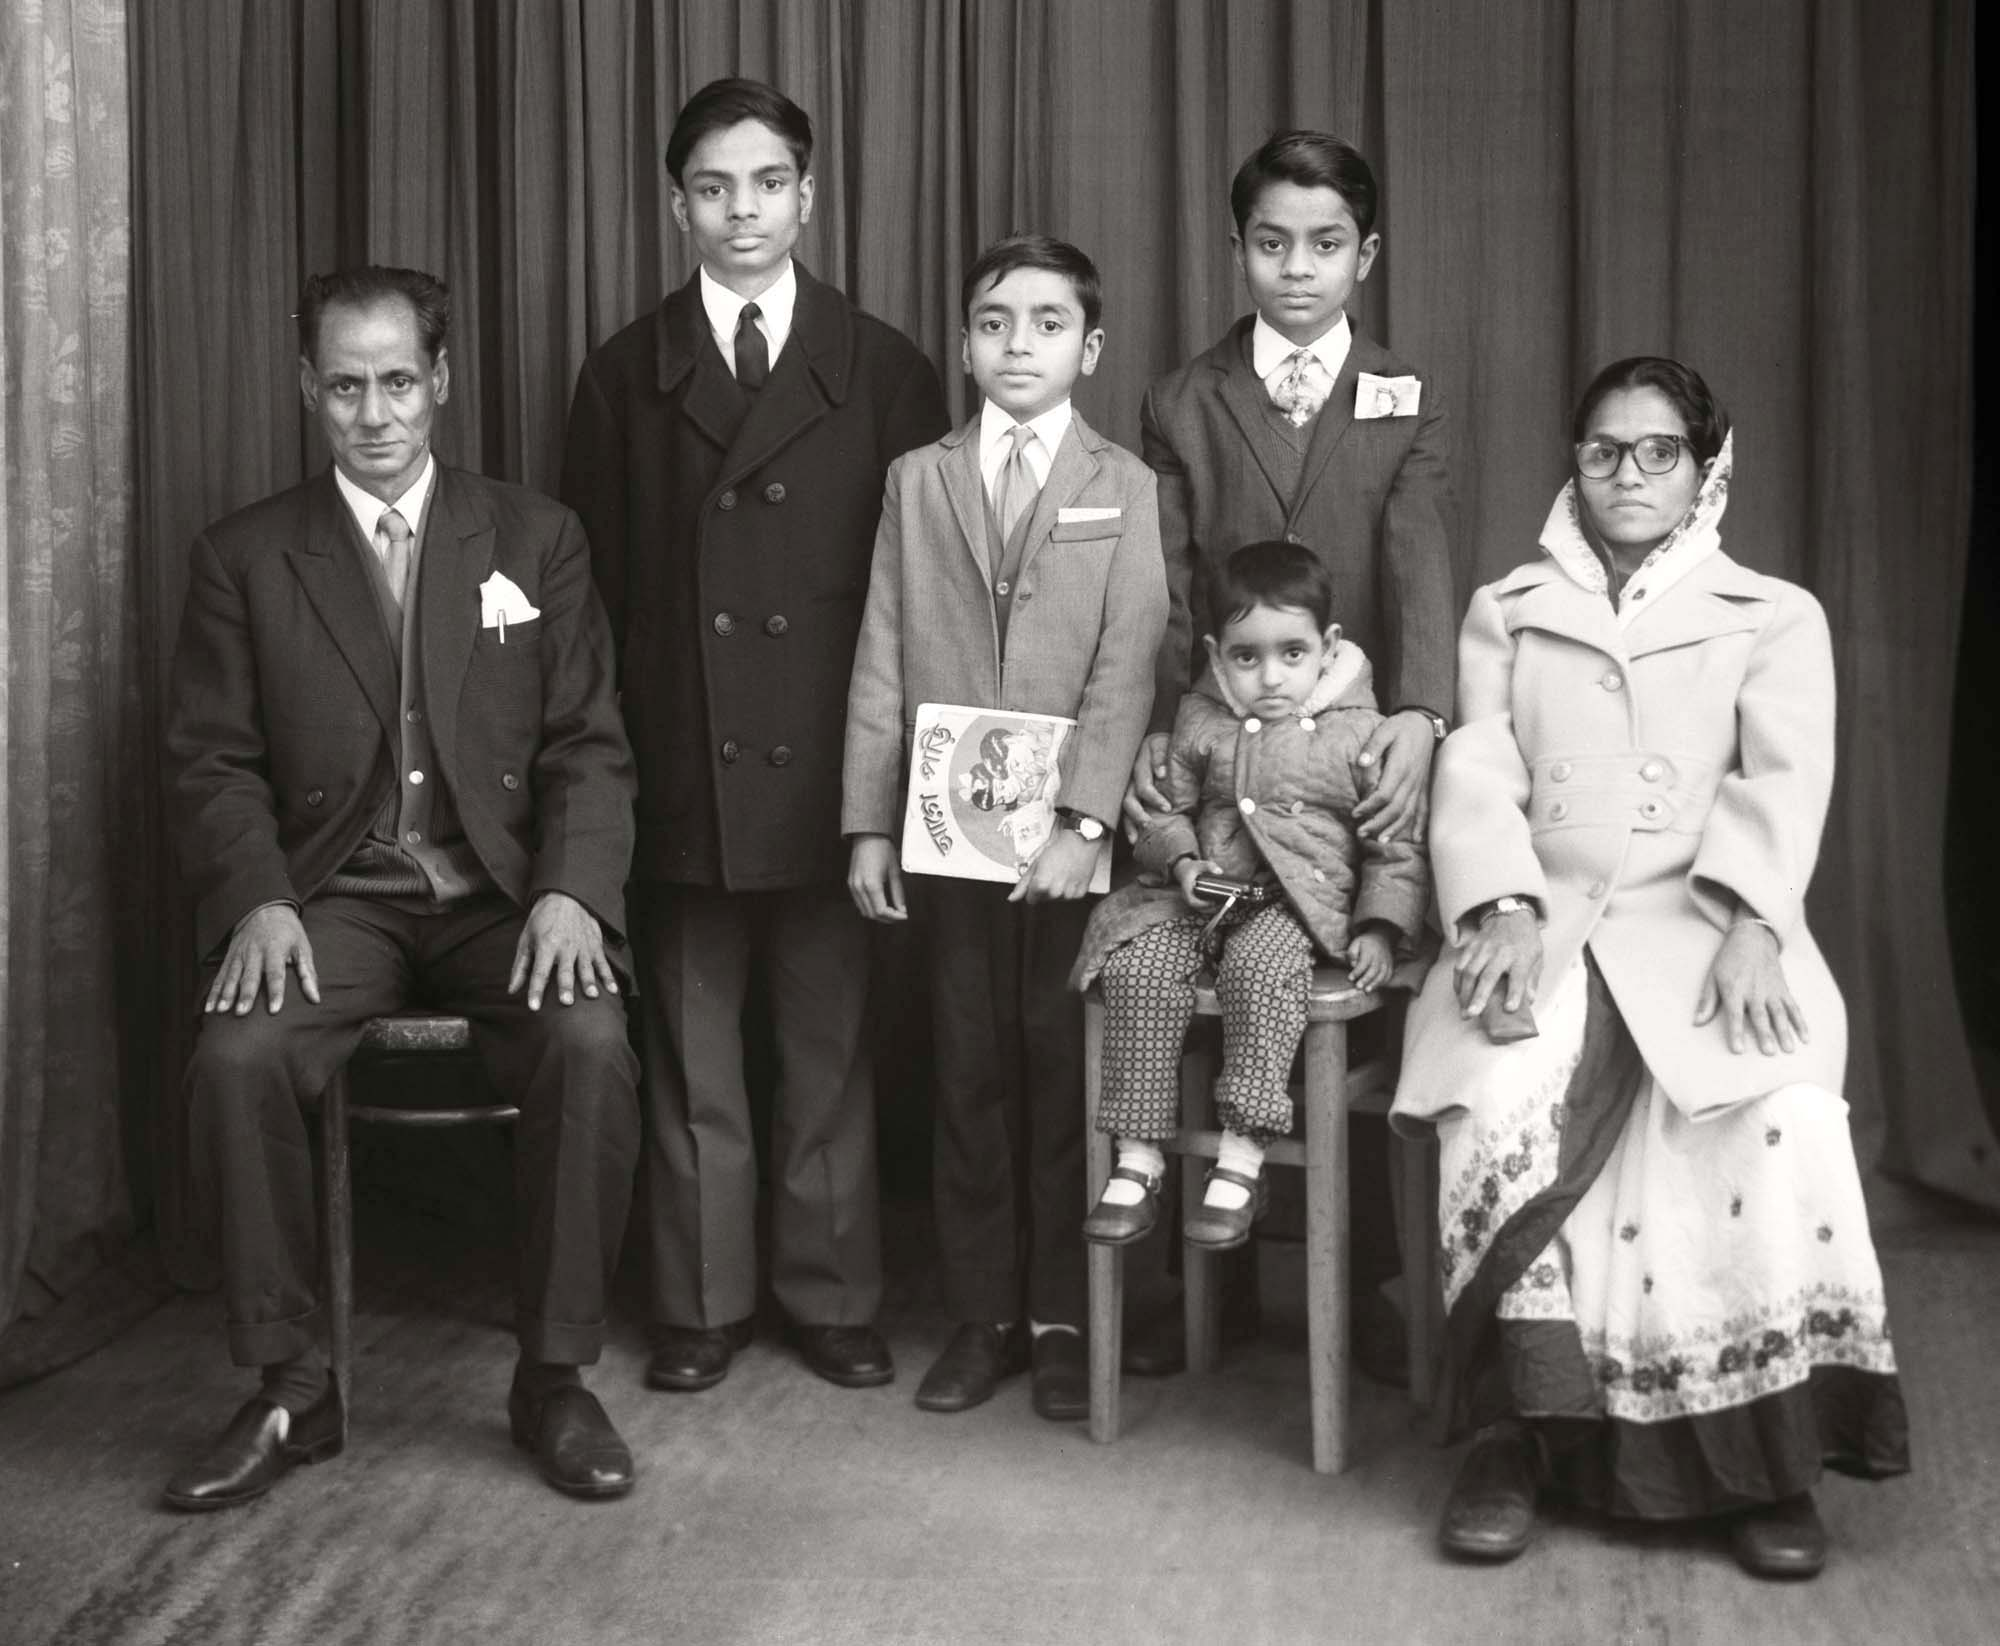 A Bradford Bangladeshi family at the Belle Vue Studio, also known as Sanford Taylor's, who was its original owner. This high street portrait studio on Manningham Lane in Bradford had many customers who moved to the city to seek work during the 1940s, 50s and 60s. It became very popular amongst newly arrived Asian men, who wanted photographs to send home and who were later joined by their wives and children.